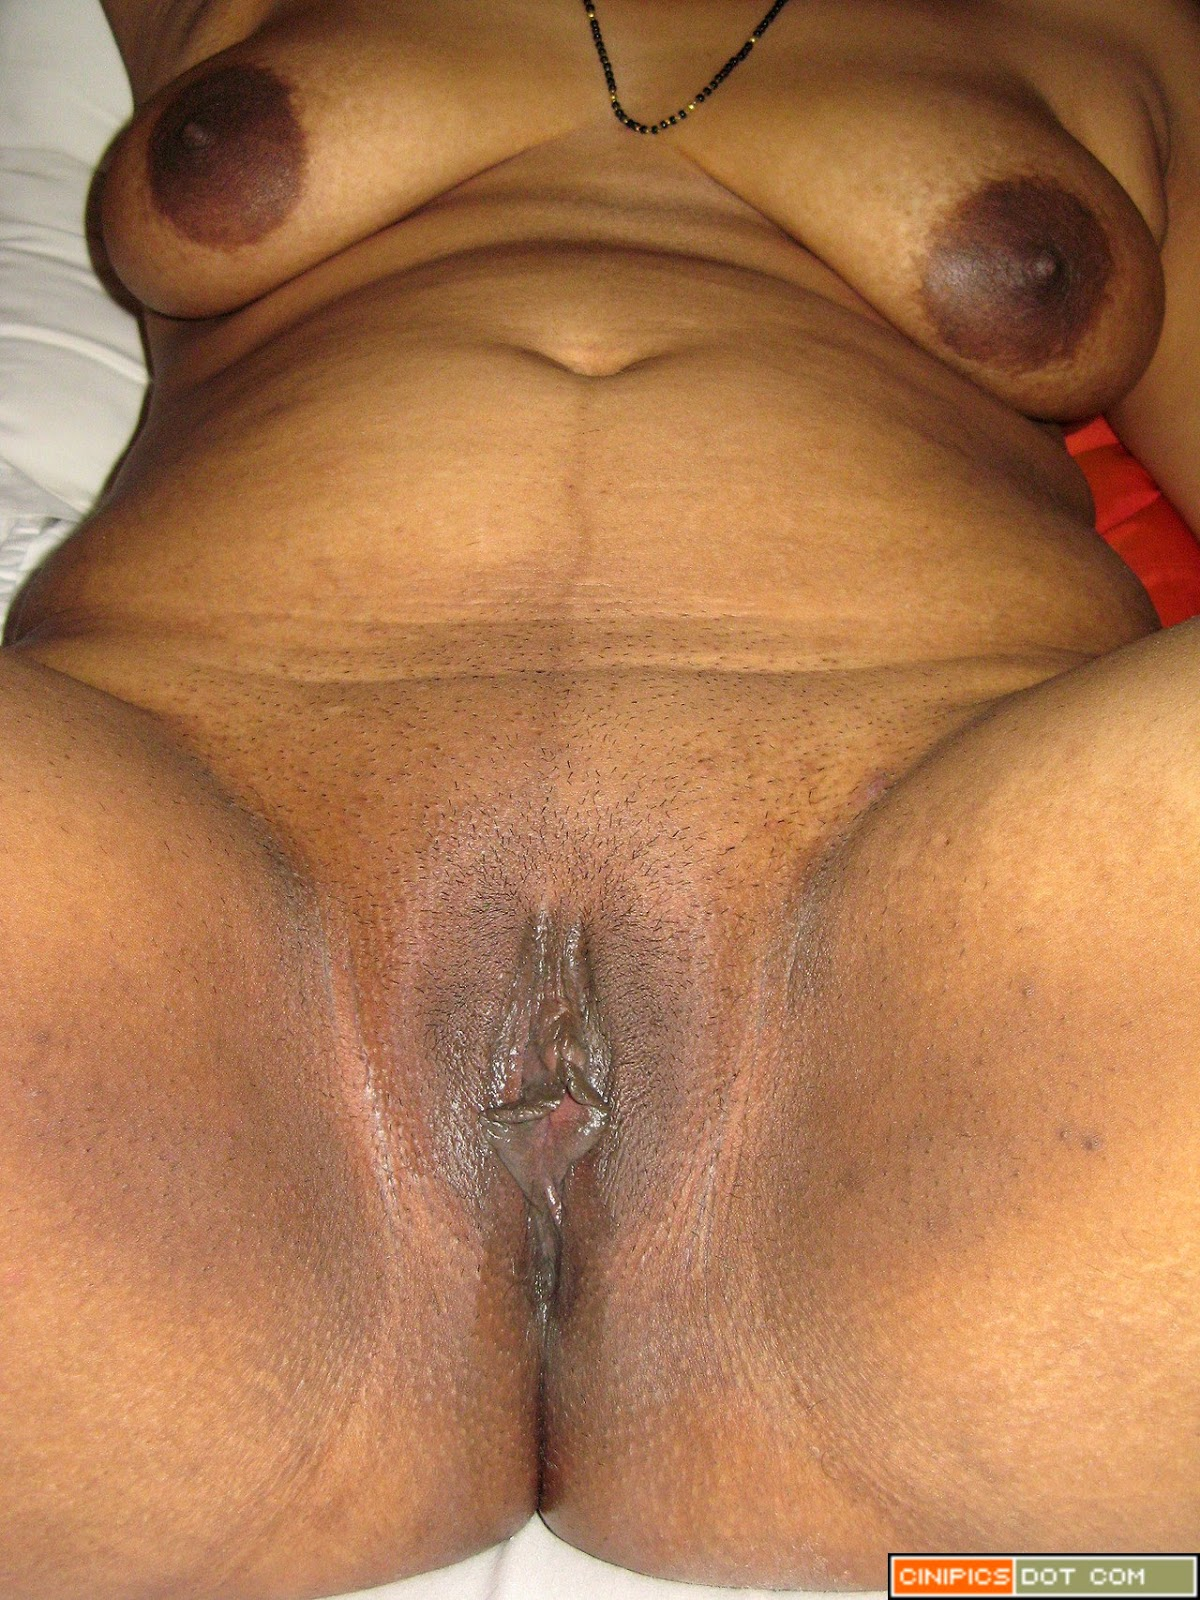 Tamil girl suck bath and suck nude his bf dick 9